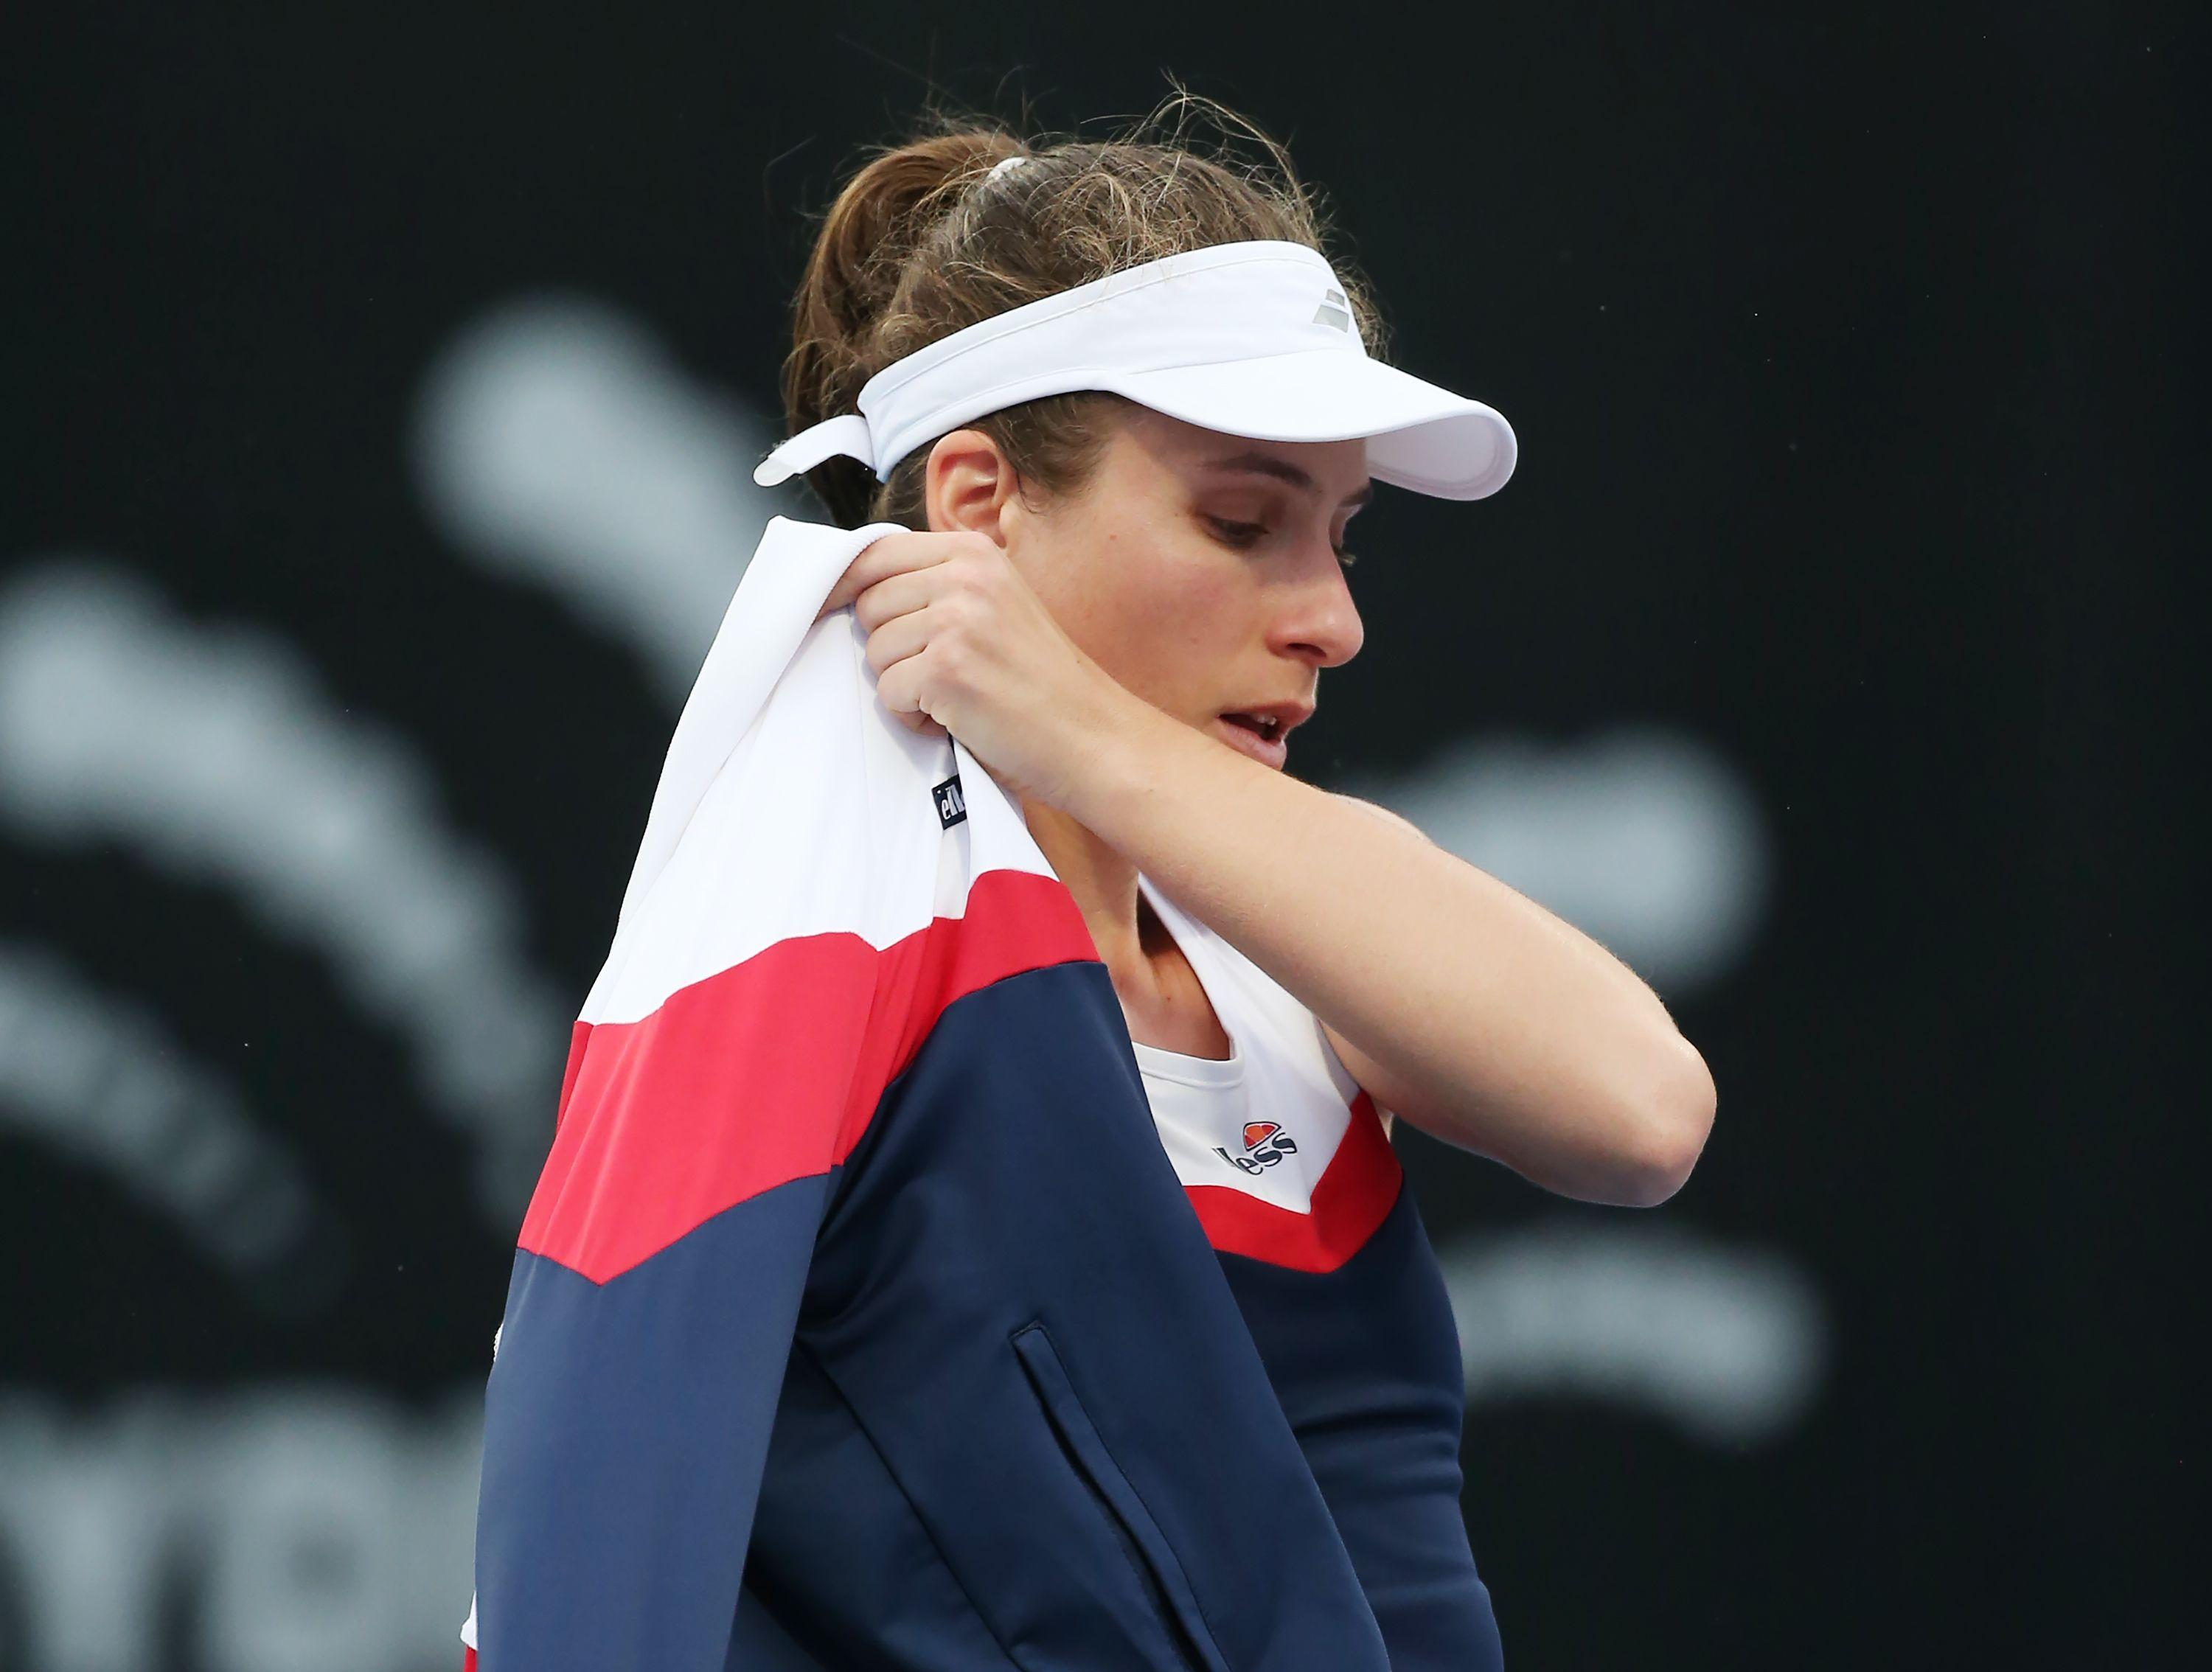 It means she is now facing a race against time to be fit for the Australian Open which starts next week